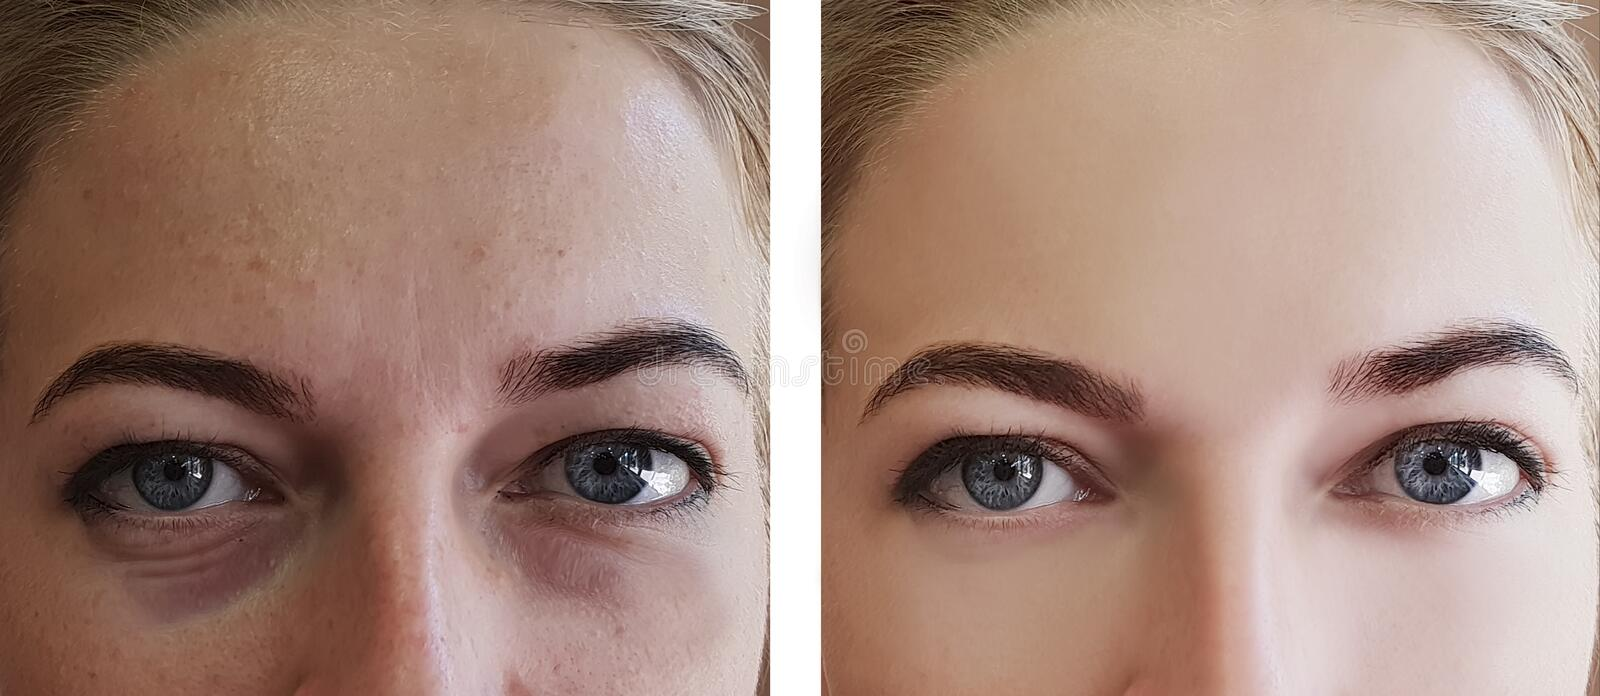 Girl wrinkles eyes before and after treatments removal royalty free stock photo